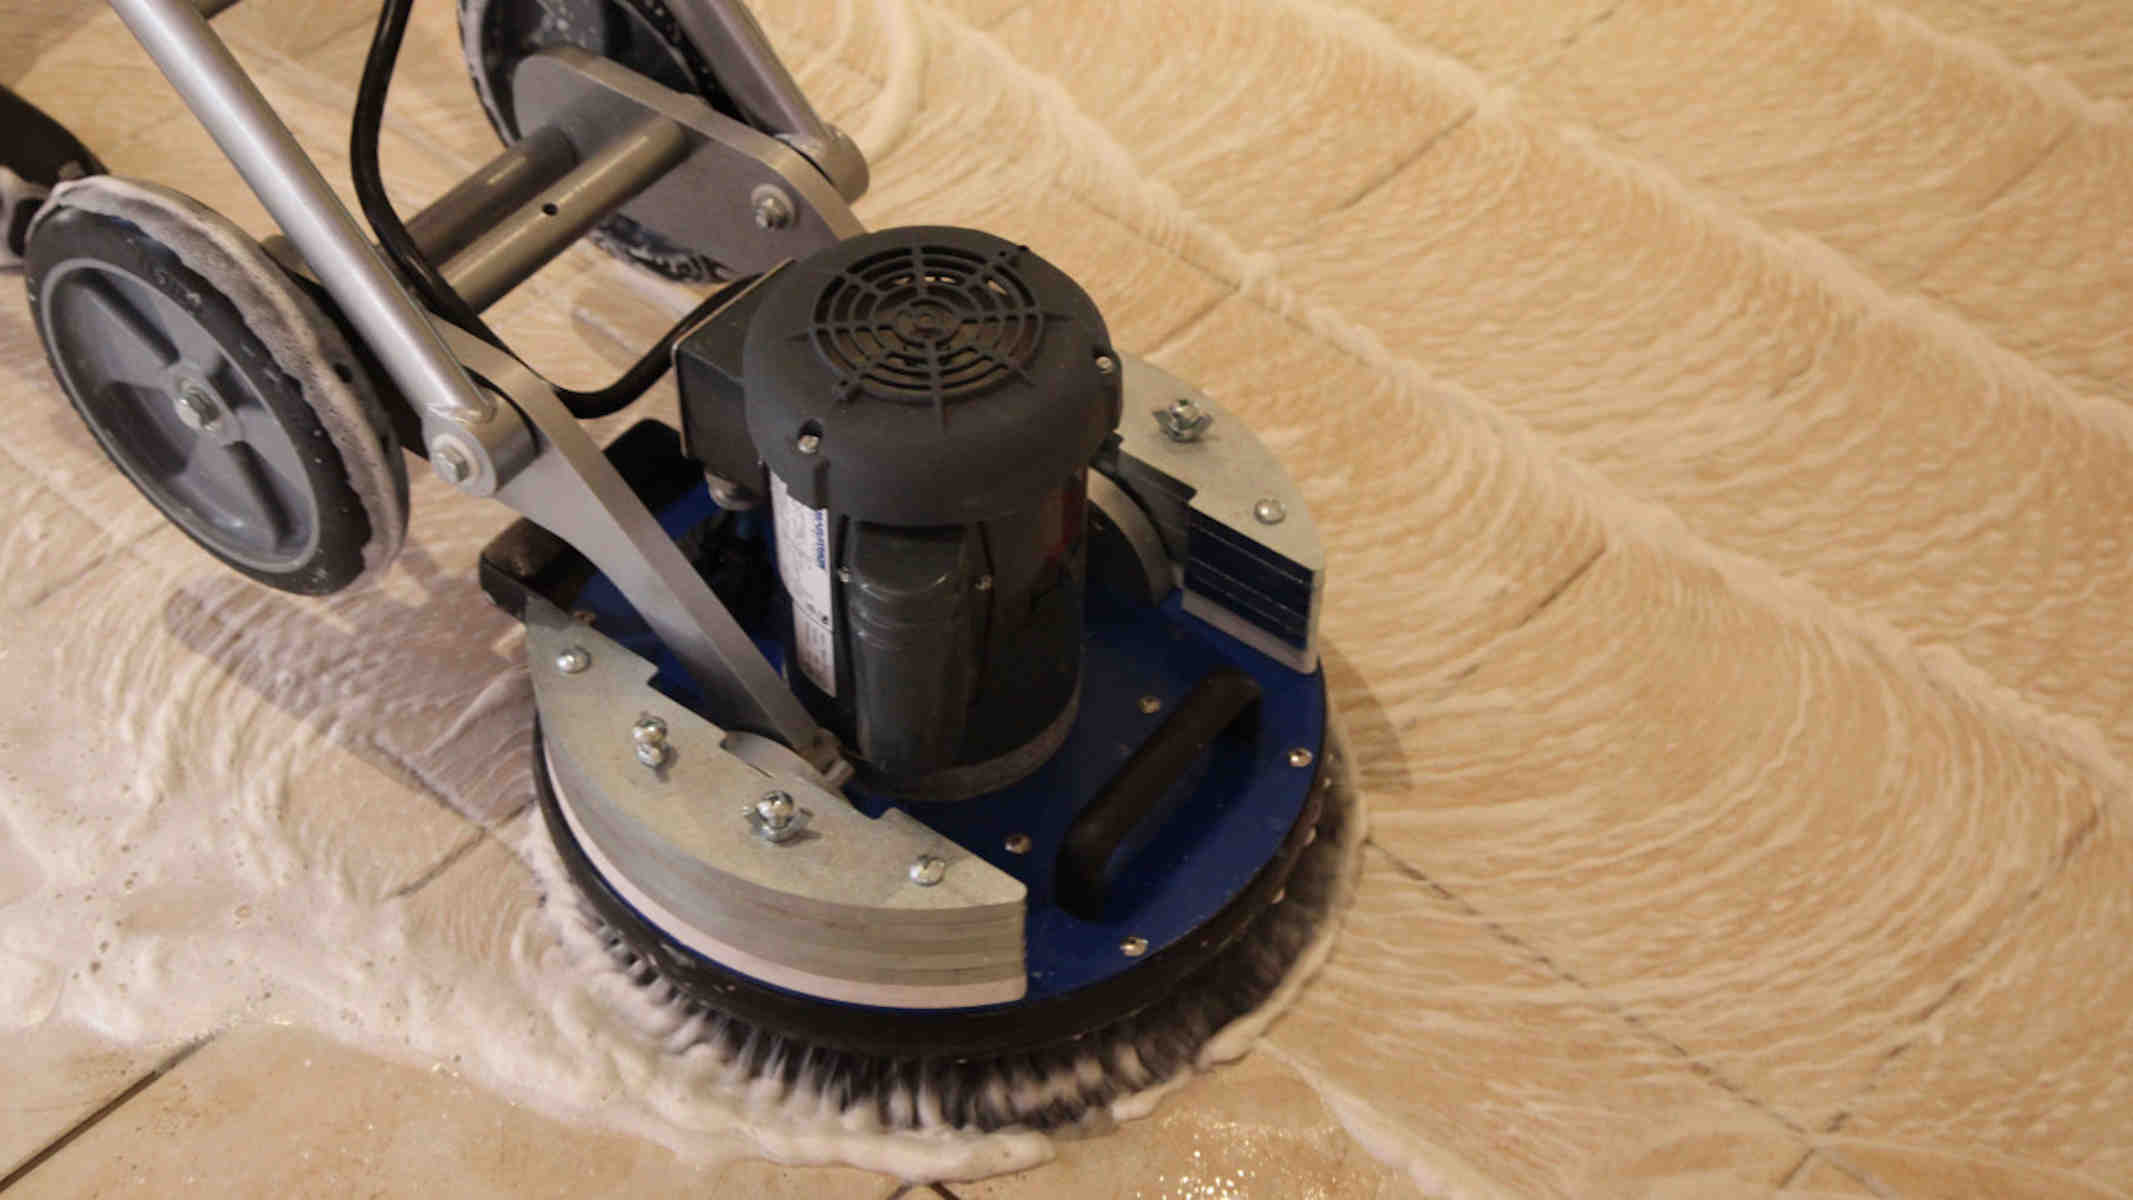 Tile & Grout Cleaning Melbourne - Scrubbing dining room tiles